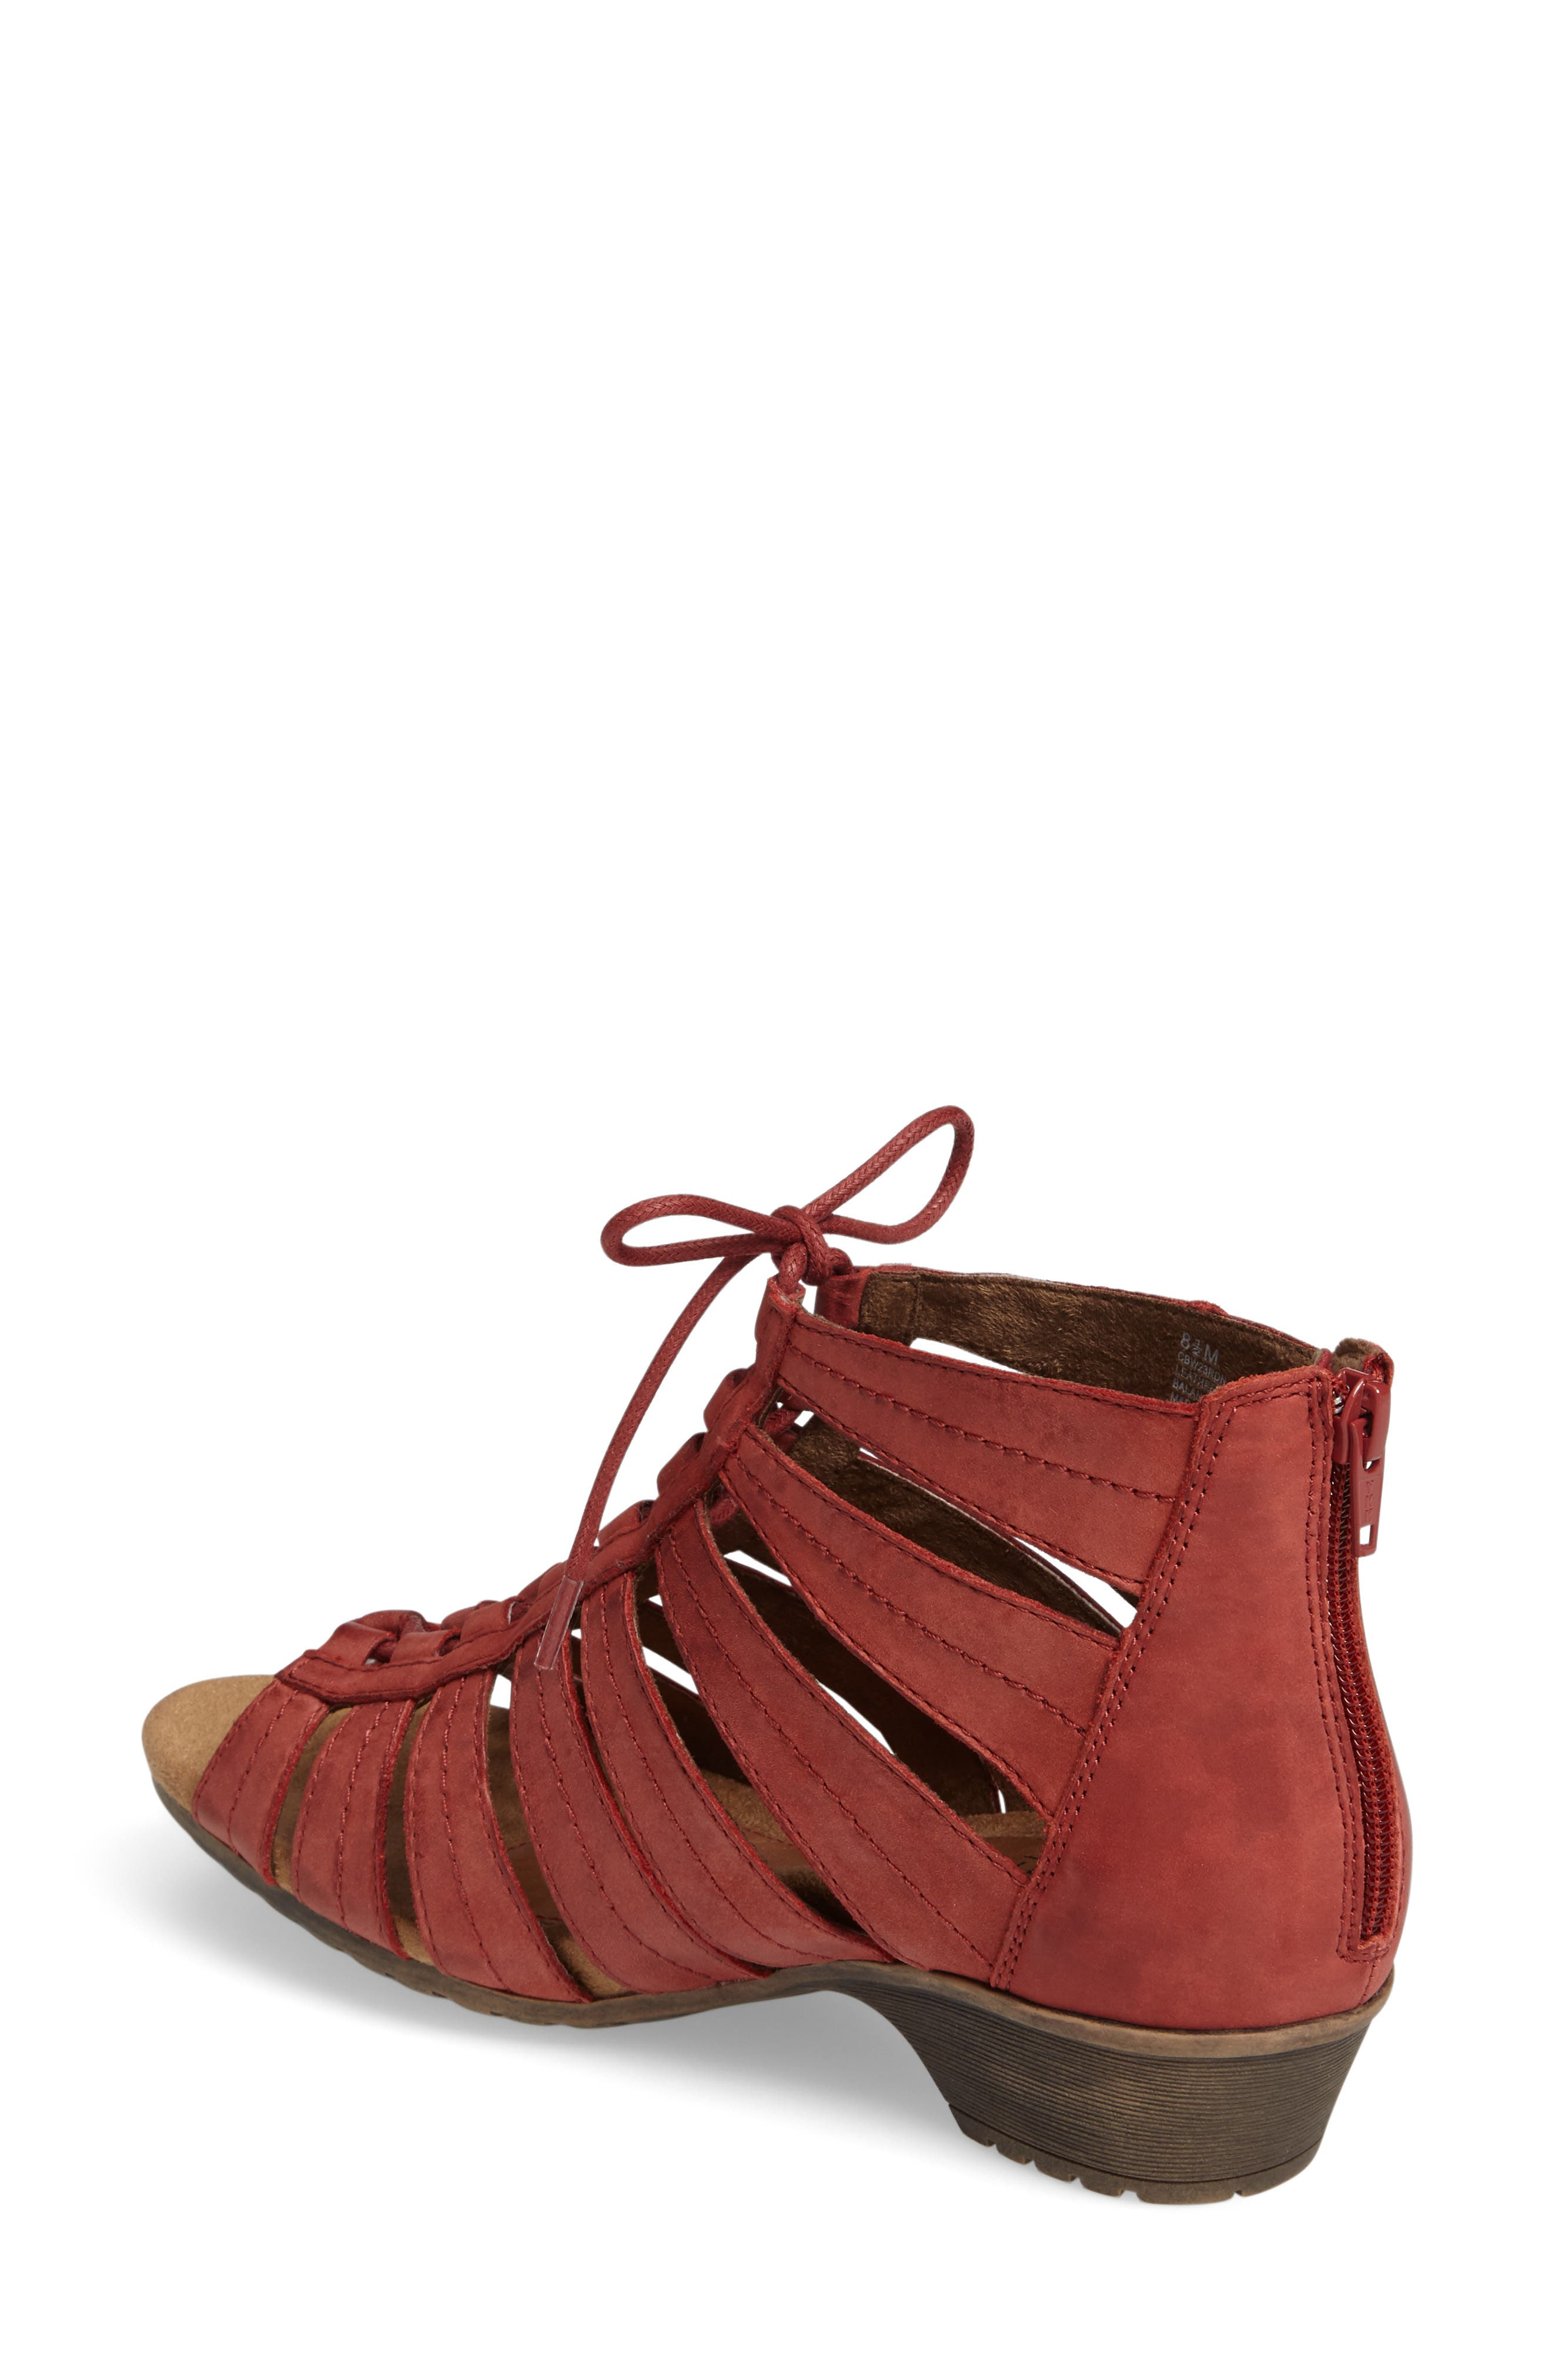 'Gabby' Lace-Up Sandal,                             Alternate thumbnail 16, color,